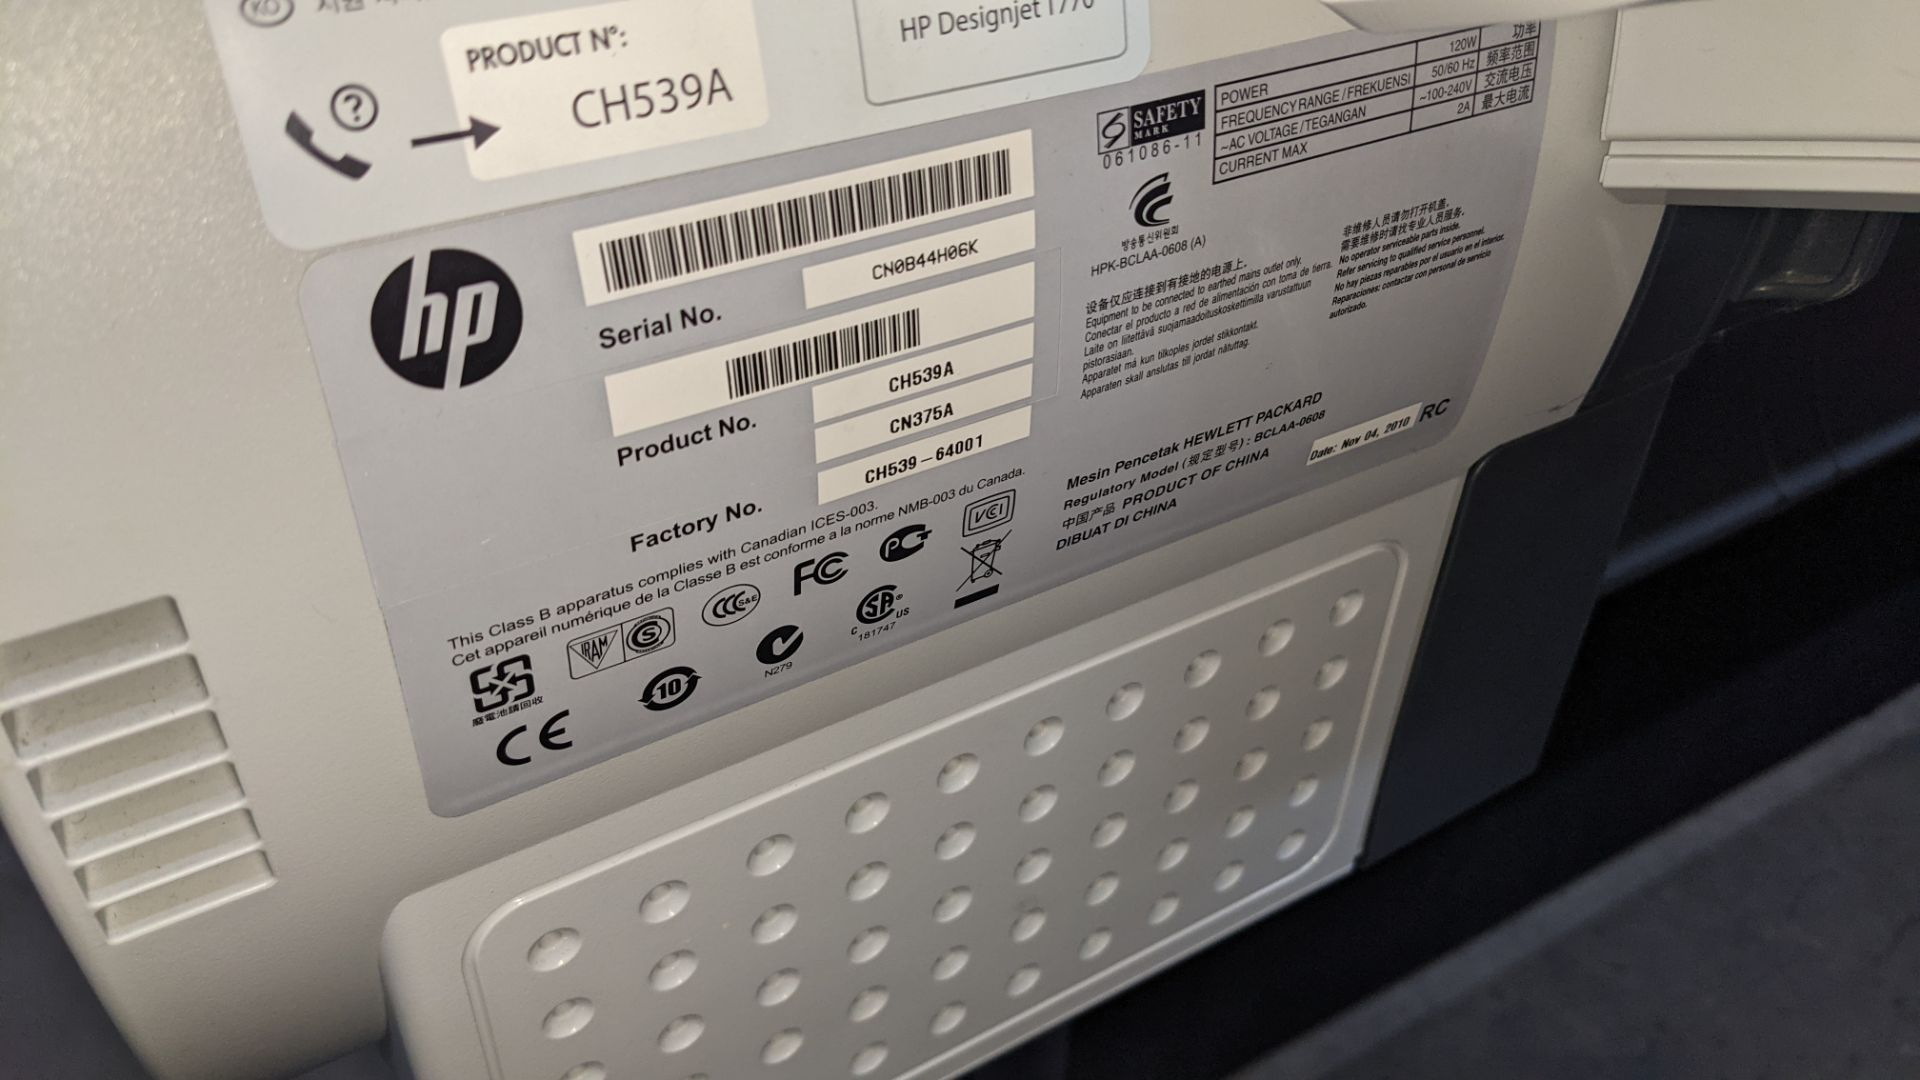 "HP DesignJet T770 wide format printer, product number CH539A/CN375A, factory number CH539-64001 (44"" - Image 7 of 10"